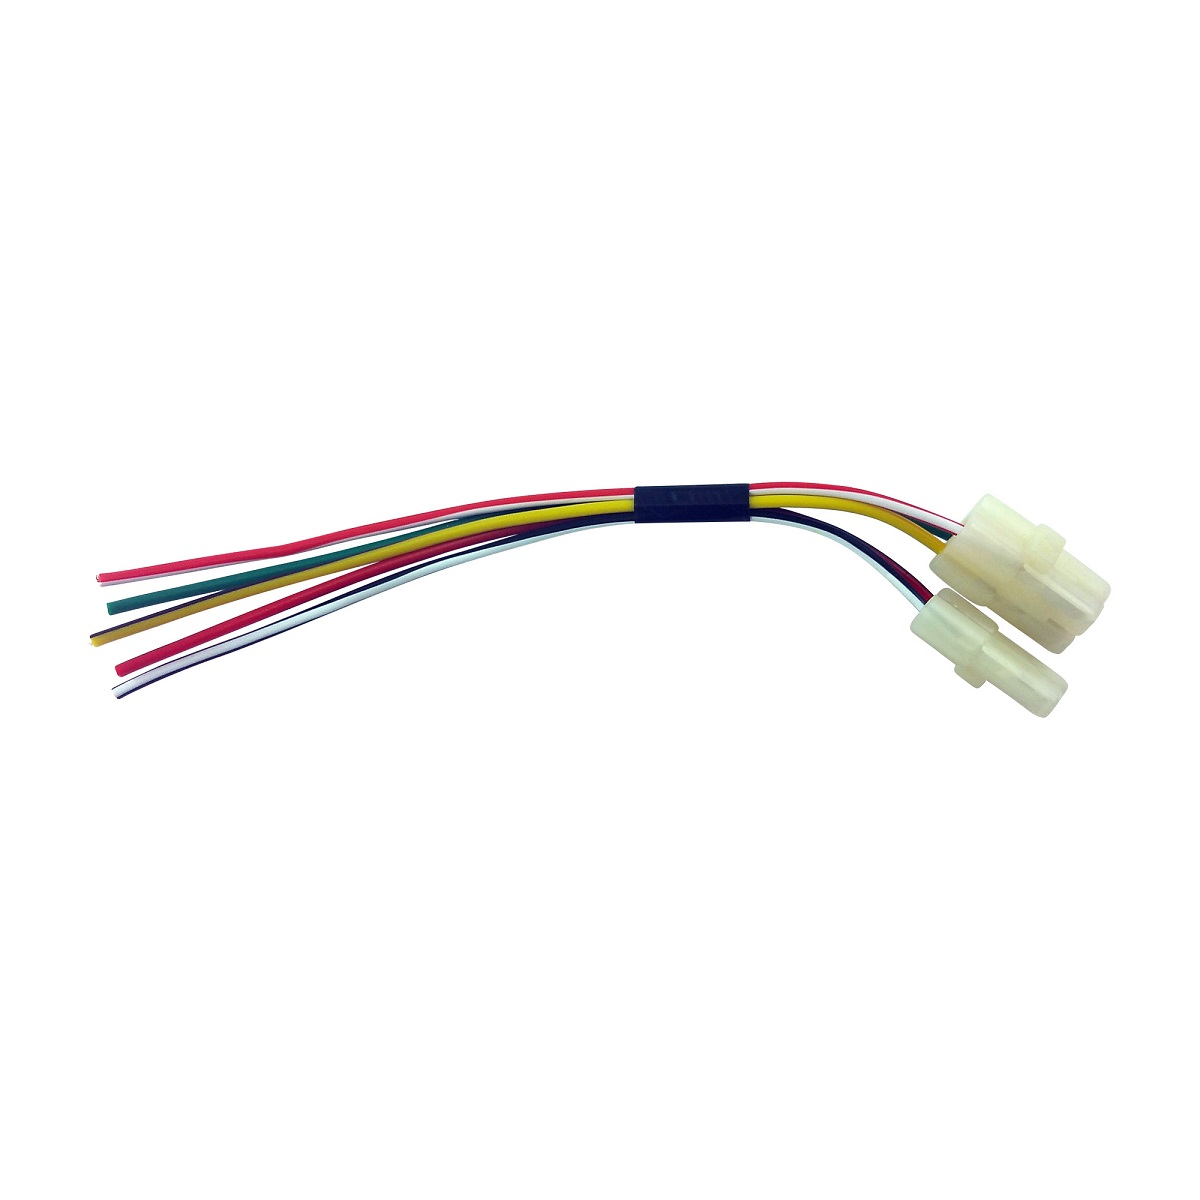 hight resolution of cdi cable wire harness plug gy6 4 stroke 50cc 150cc scooter moped atv go kart